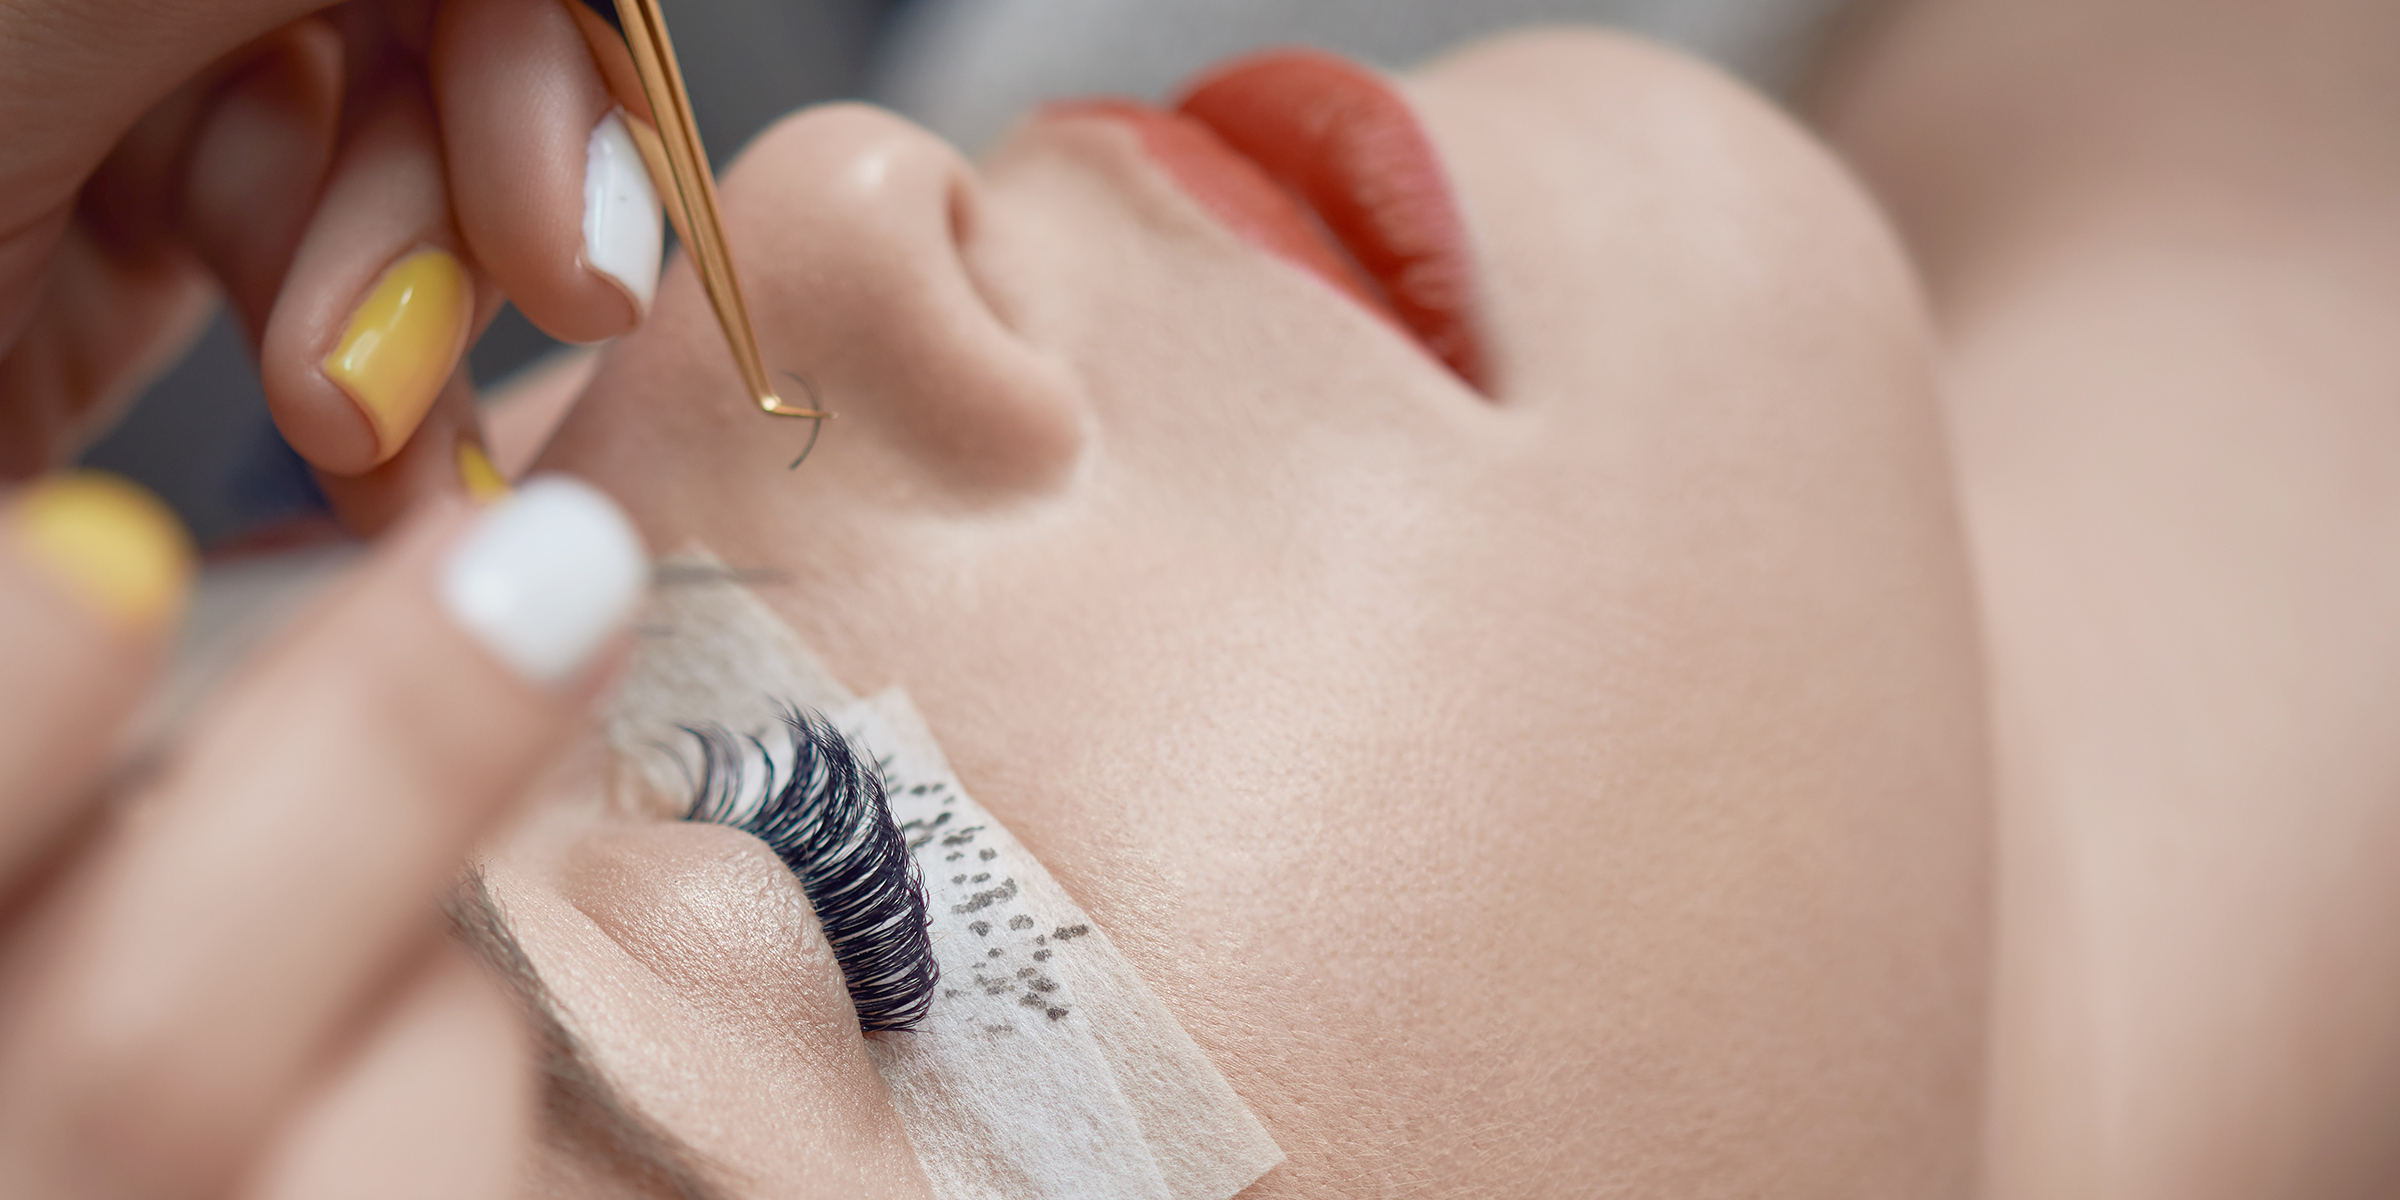 c0275b0d798 Eyelash extensions 101: Everything you need to know about lash extensions